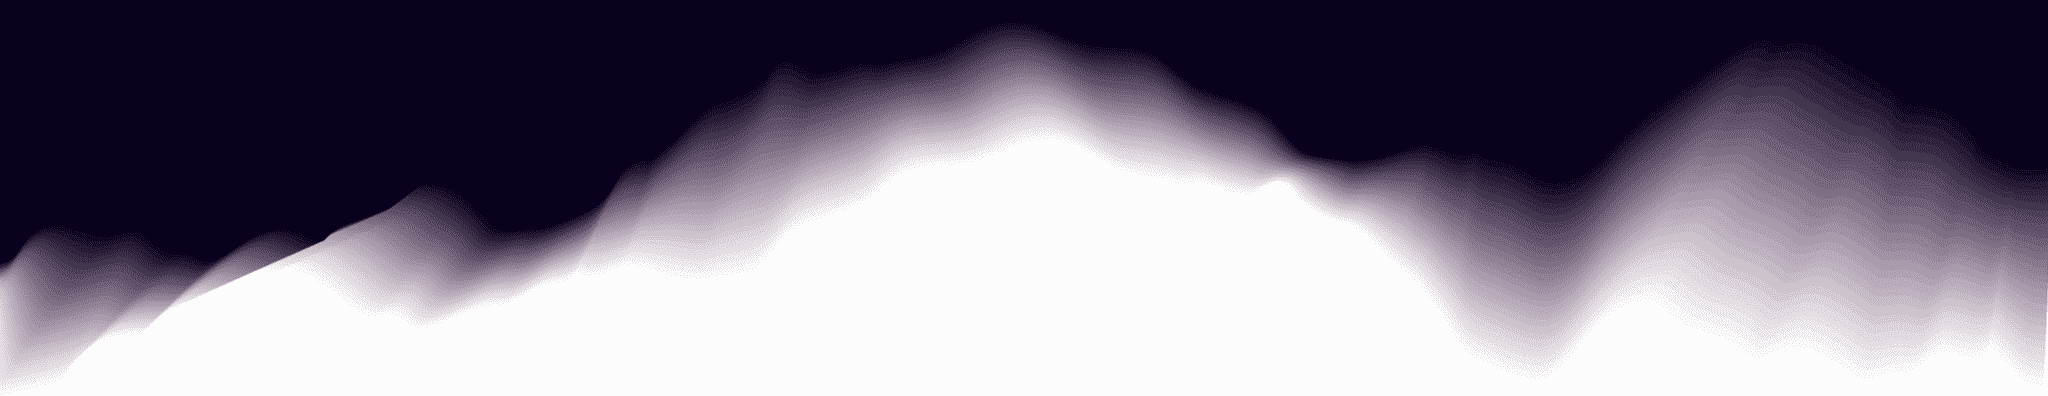 https://en.templumdianae.com/wp-content/uploads/2019/11/dark_purple_bottom_divider.png